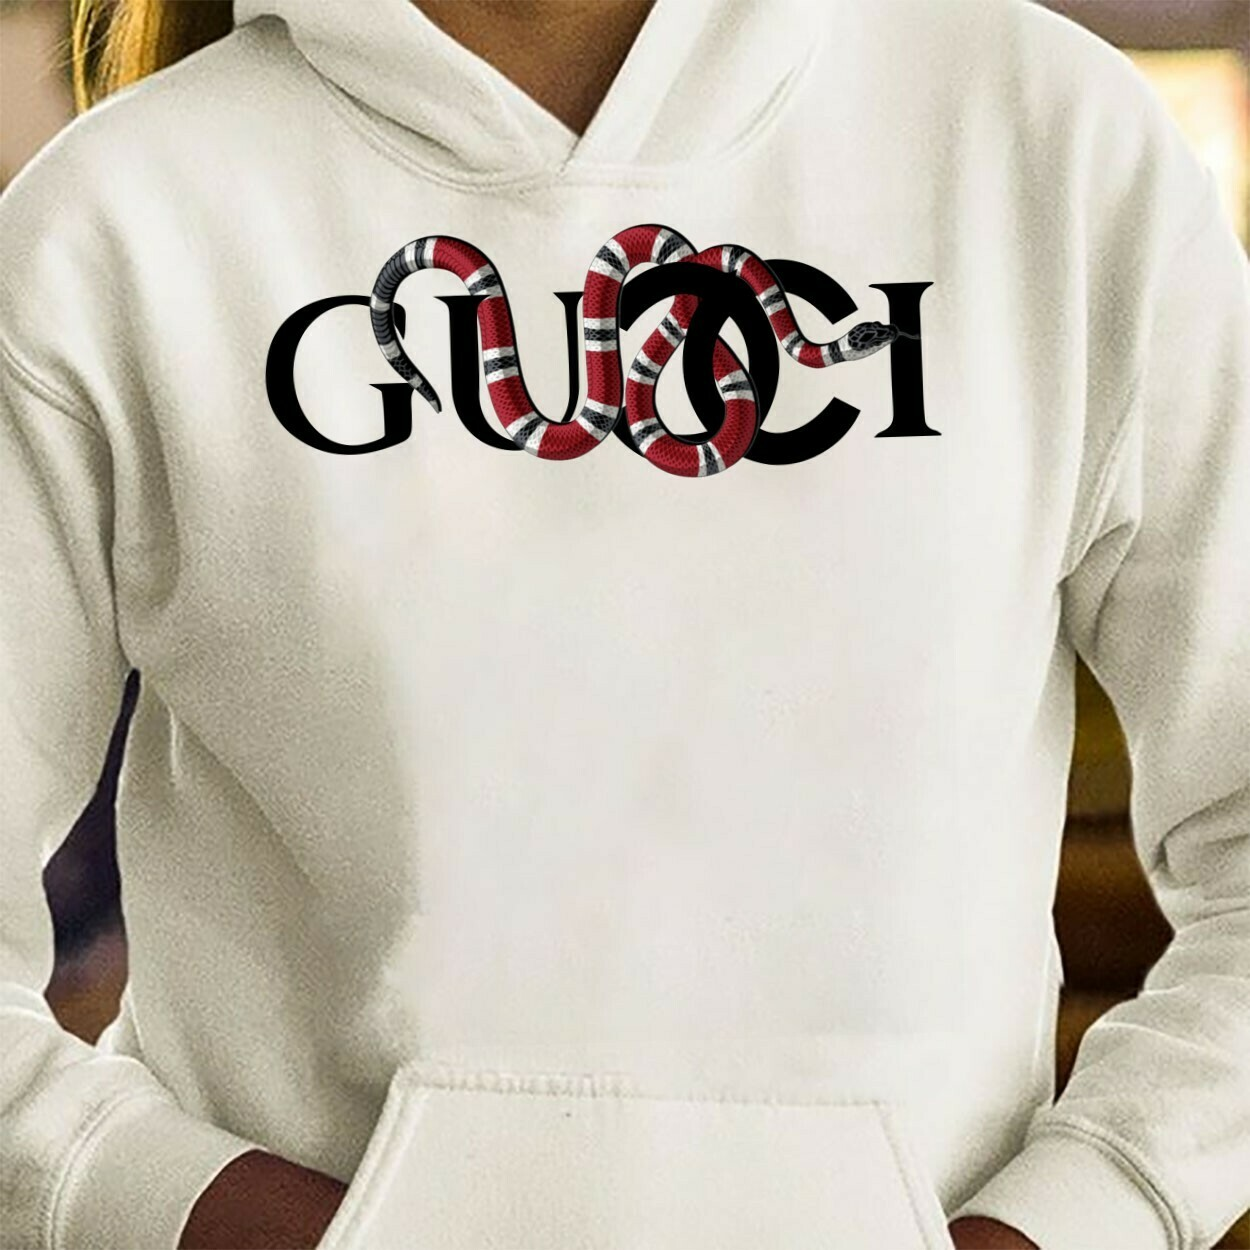 Classic Logo Red Snake Gucci Chanel Shirt LV T-shirt Louis Vuitton Fashion LV Fashion for Women Men Youth Kids Vintage T Shirt Long Sleeve Sweatshirt Hoodie Jolly Family Gifts